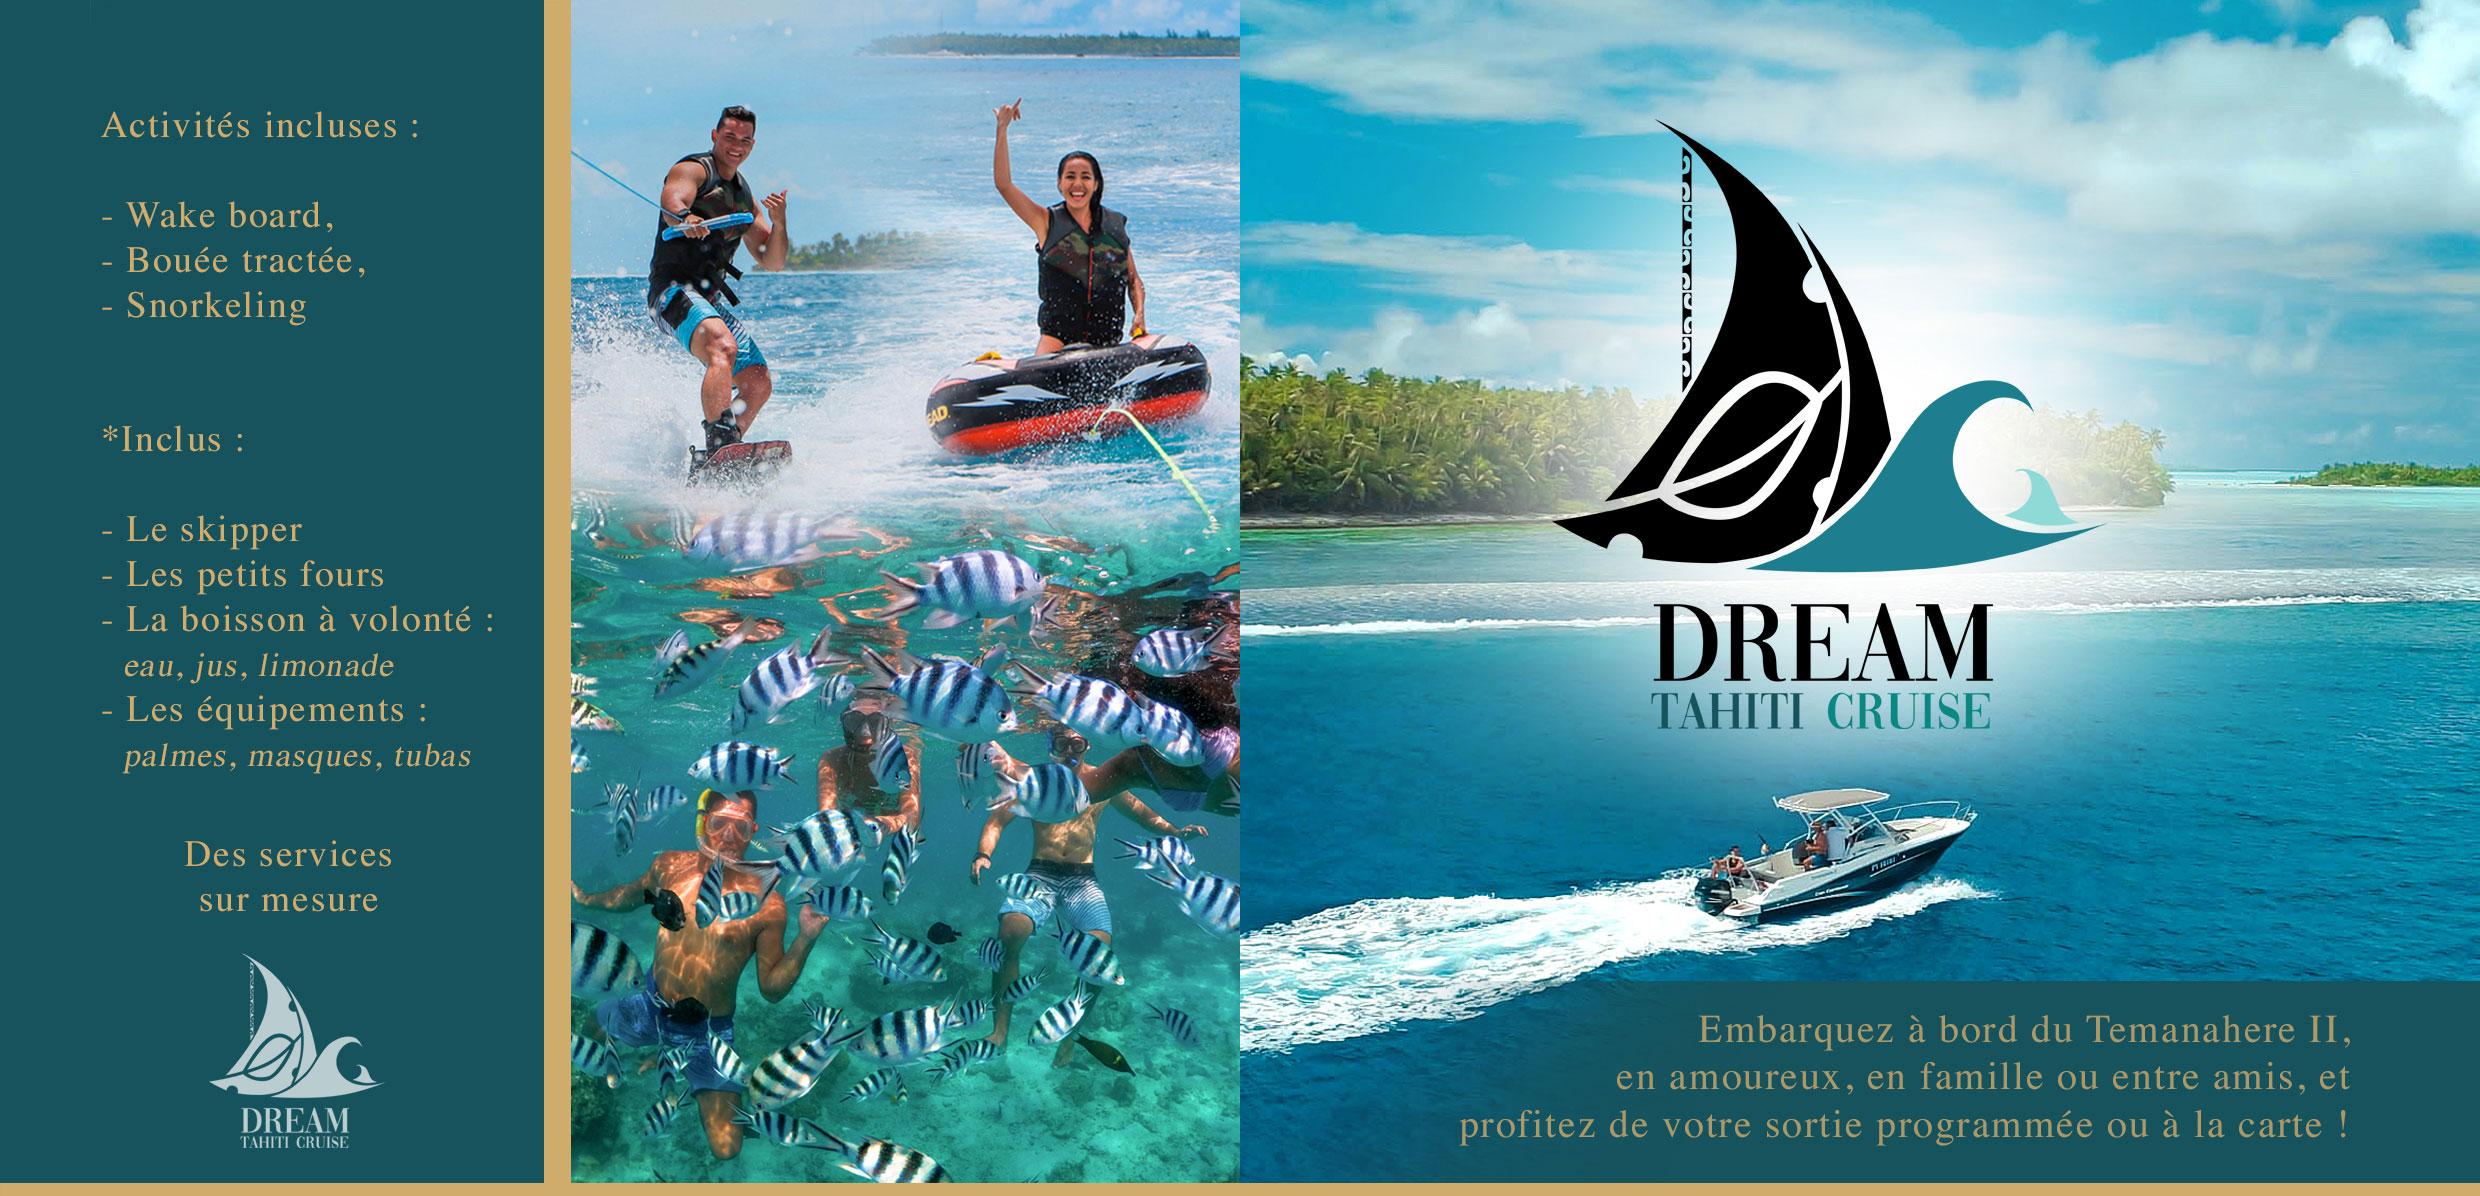 https://tahititourisme.kr/wp-content/uploads/2019/06/68f6150b8766-DREAM_TAHITI_CRUISE_FLYER1140x550px.jpg